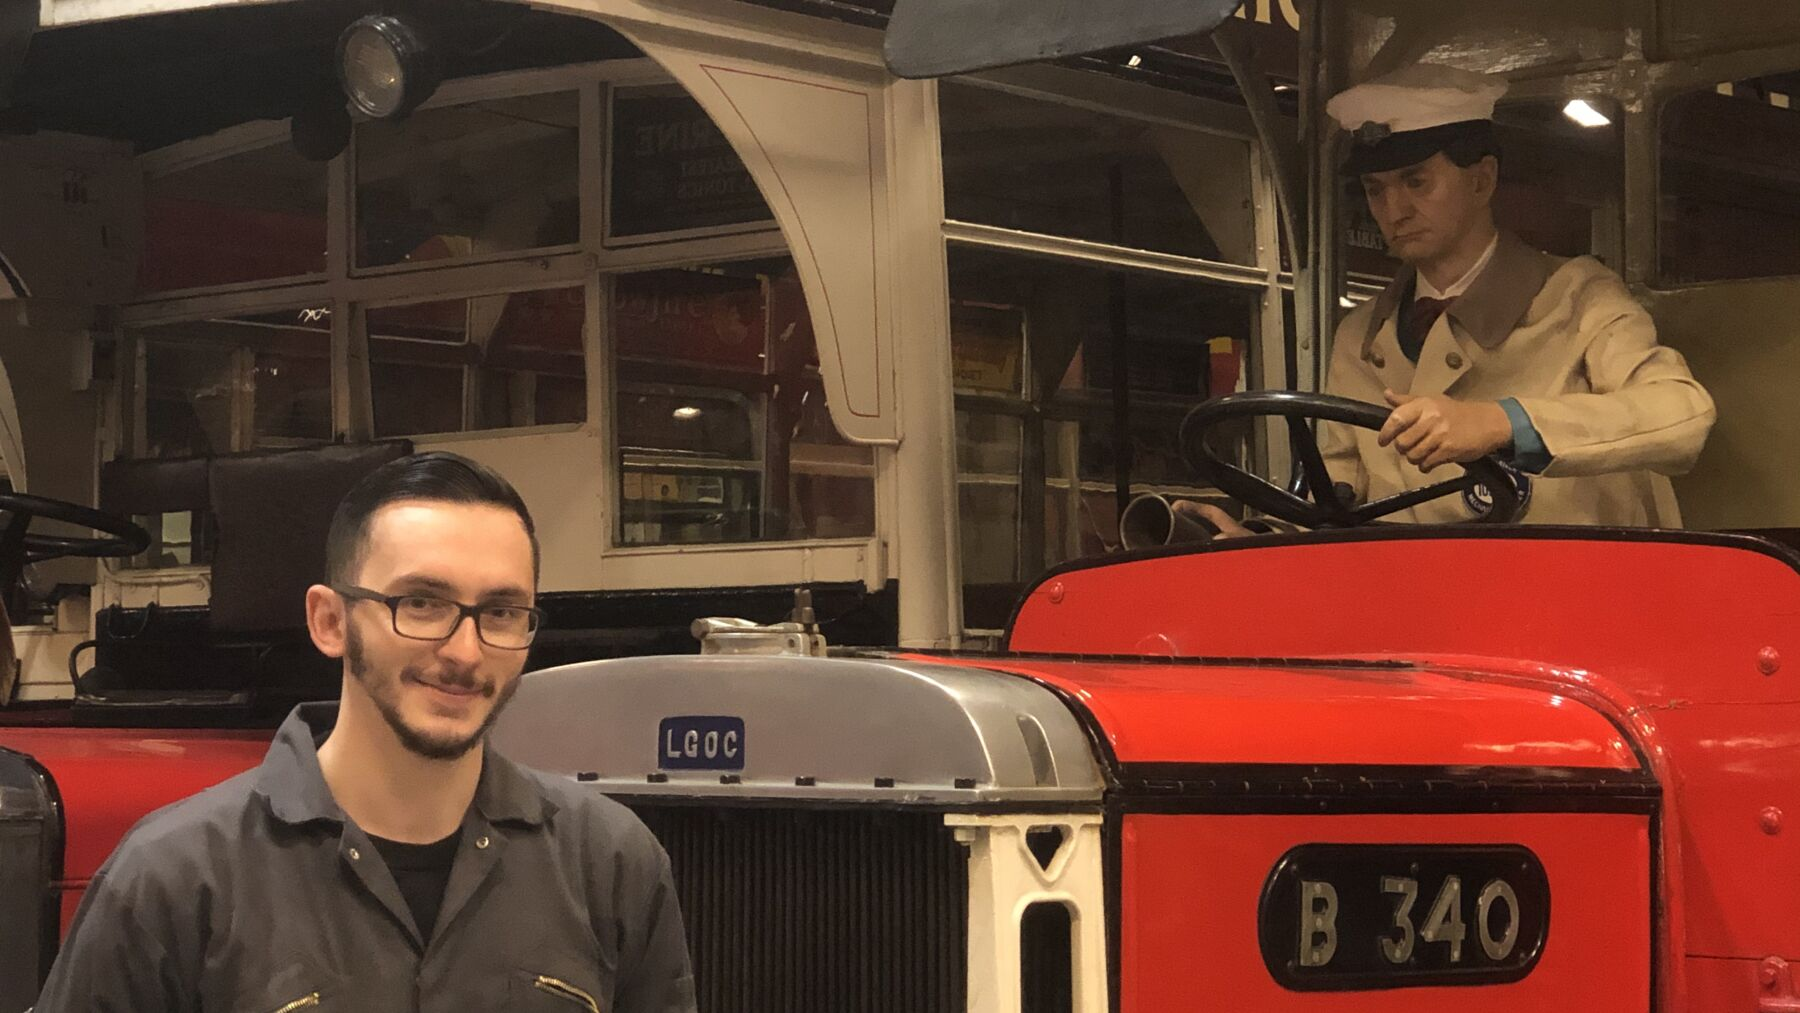 Alex - a curatorial technician at the London Transport Museum with a waxwork dummy in an old-fashioned London bus